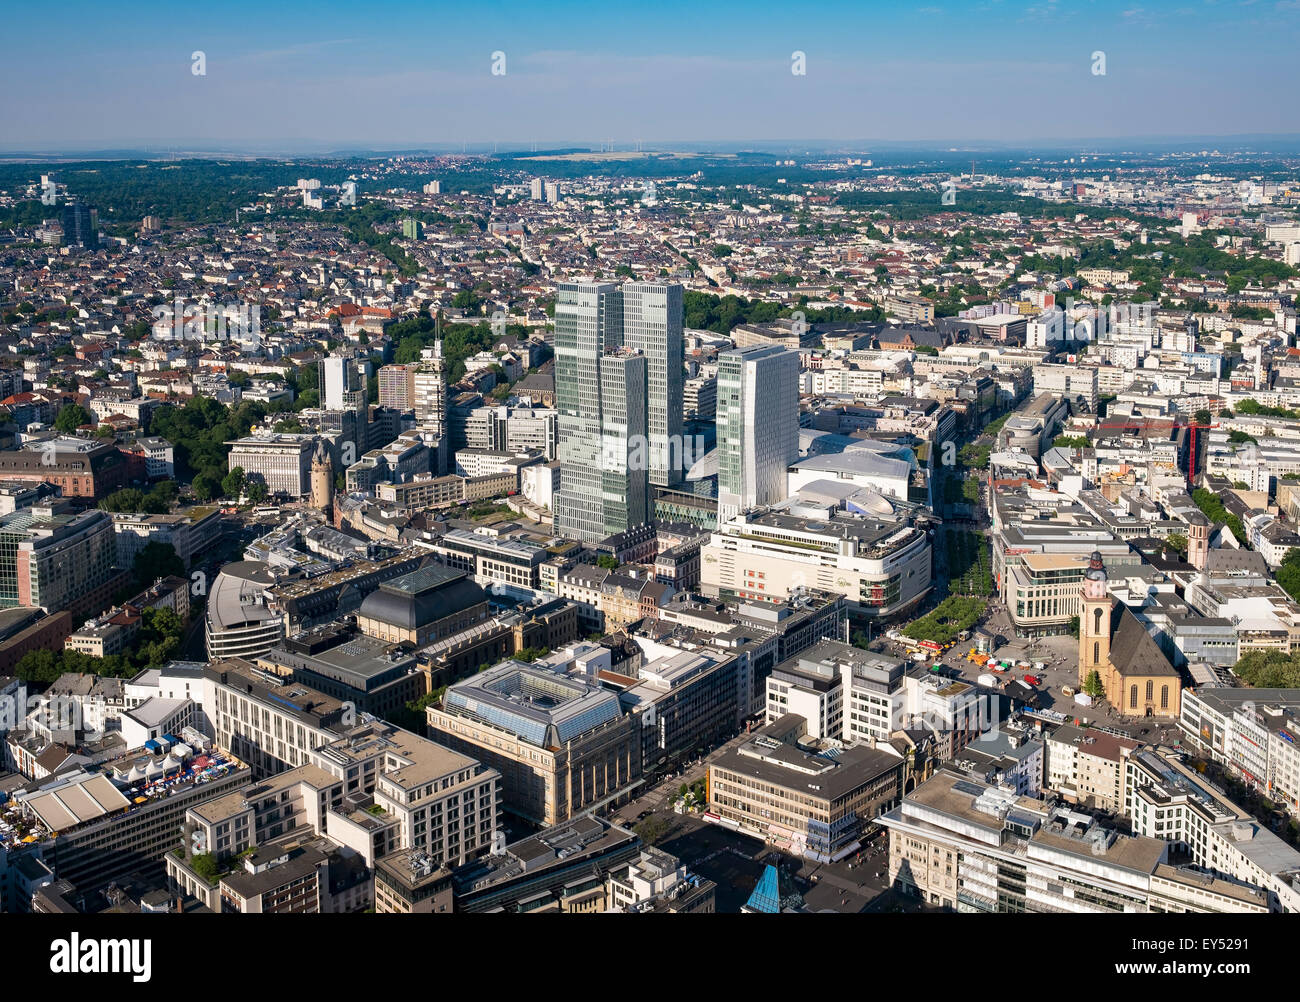 Palais Quartier and Zeil, city centre, view from the Main Tower, Frankfurt am Main, Hesse, Germany Stock Photo